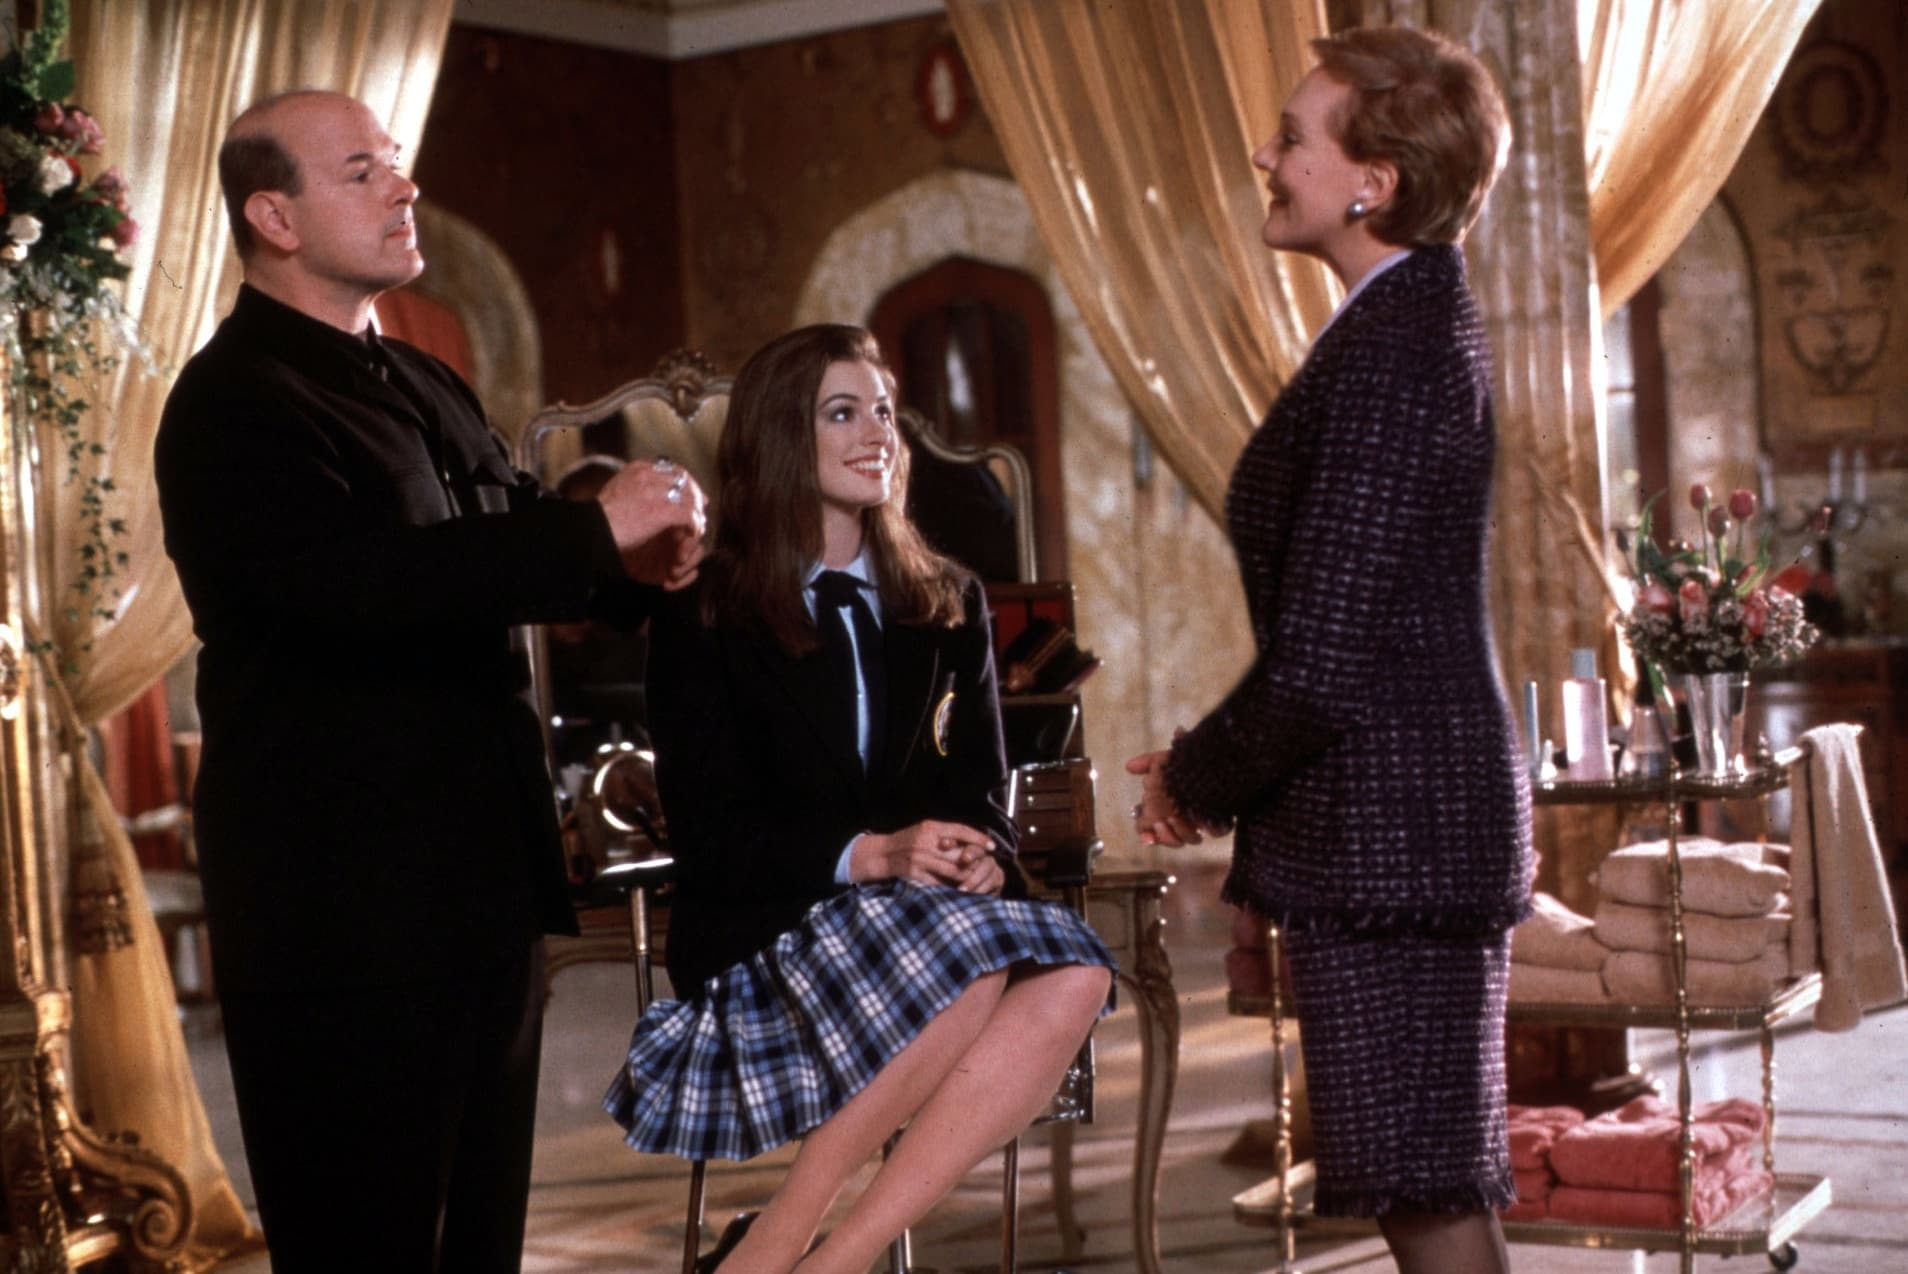 Anne Hathaway was 18-years-old when cast in the lead role of Mia Thermopolis in The Princess Diaries